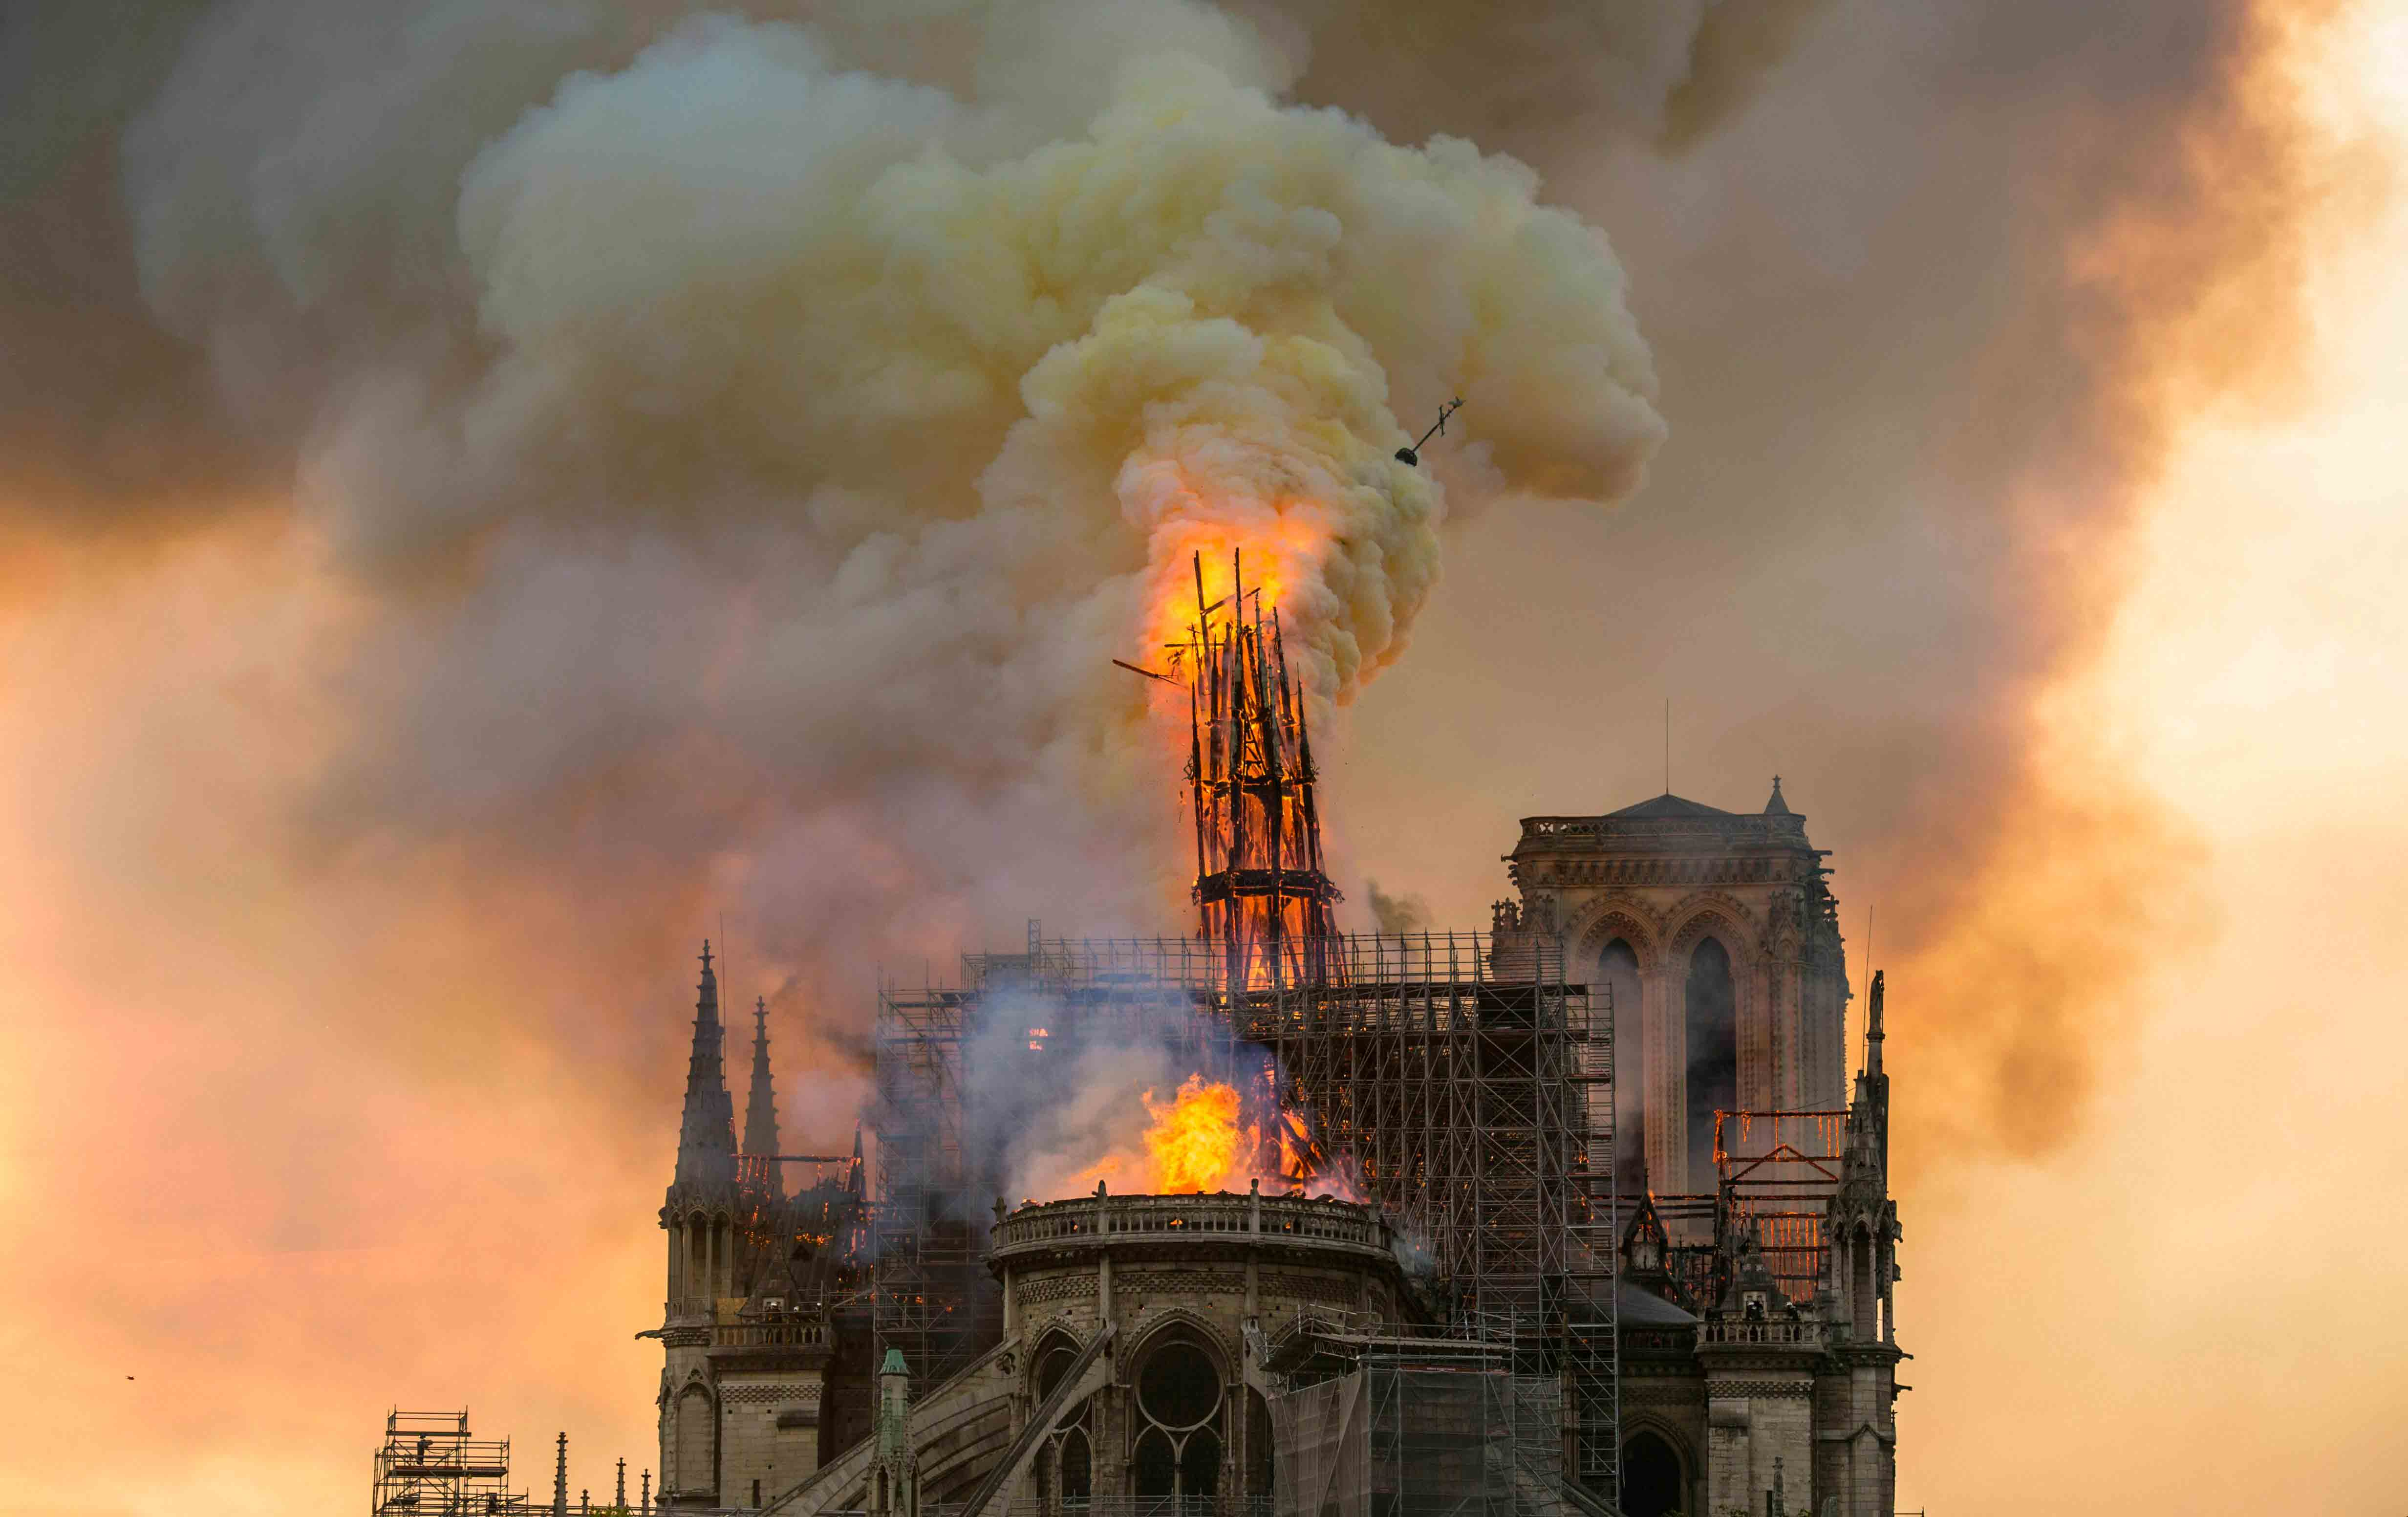 Cathedral of Notre Dame going up in flames